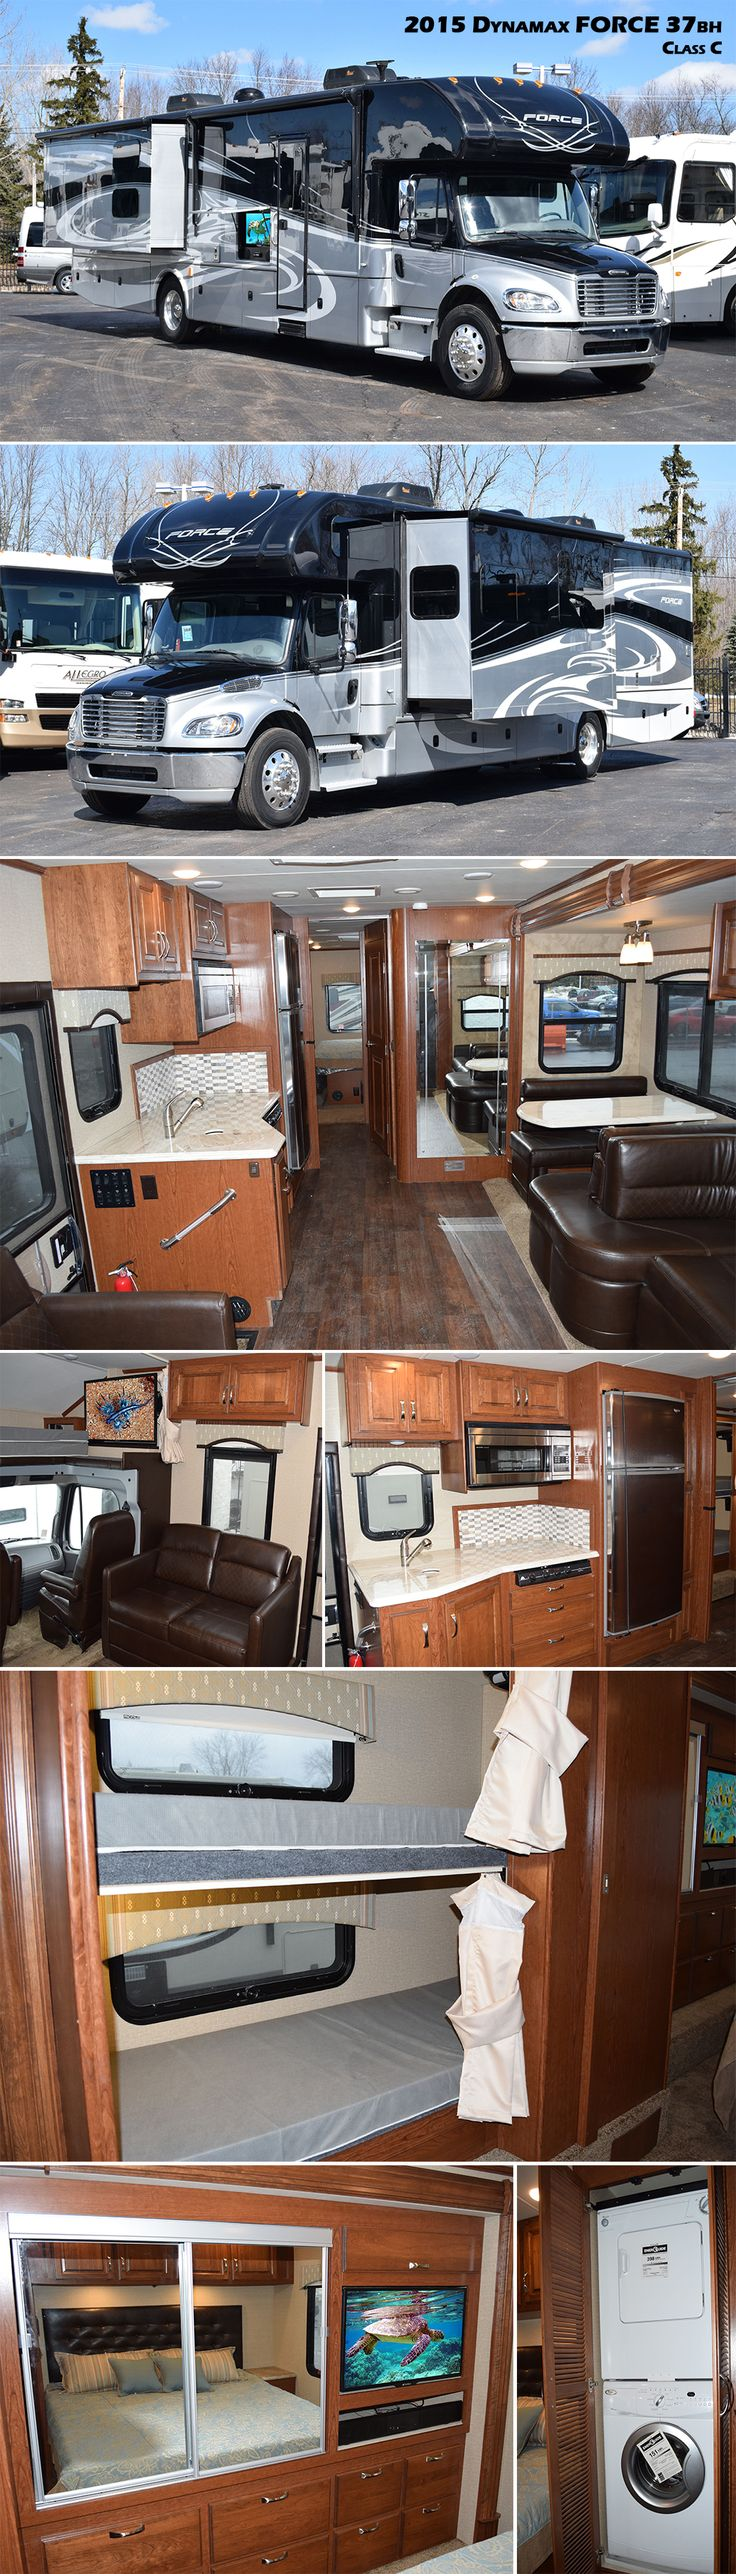 Introducing the all NEW 2015 FORCE 37BH Class C Motorhome by Dynamax. The FORCE is built to last with some of the most luxurious appointments in it's class.